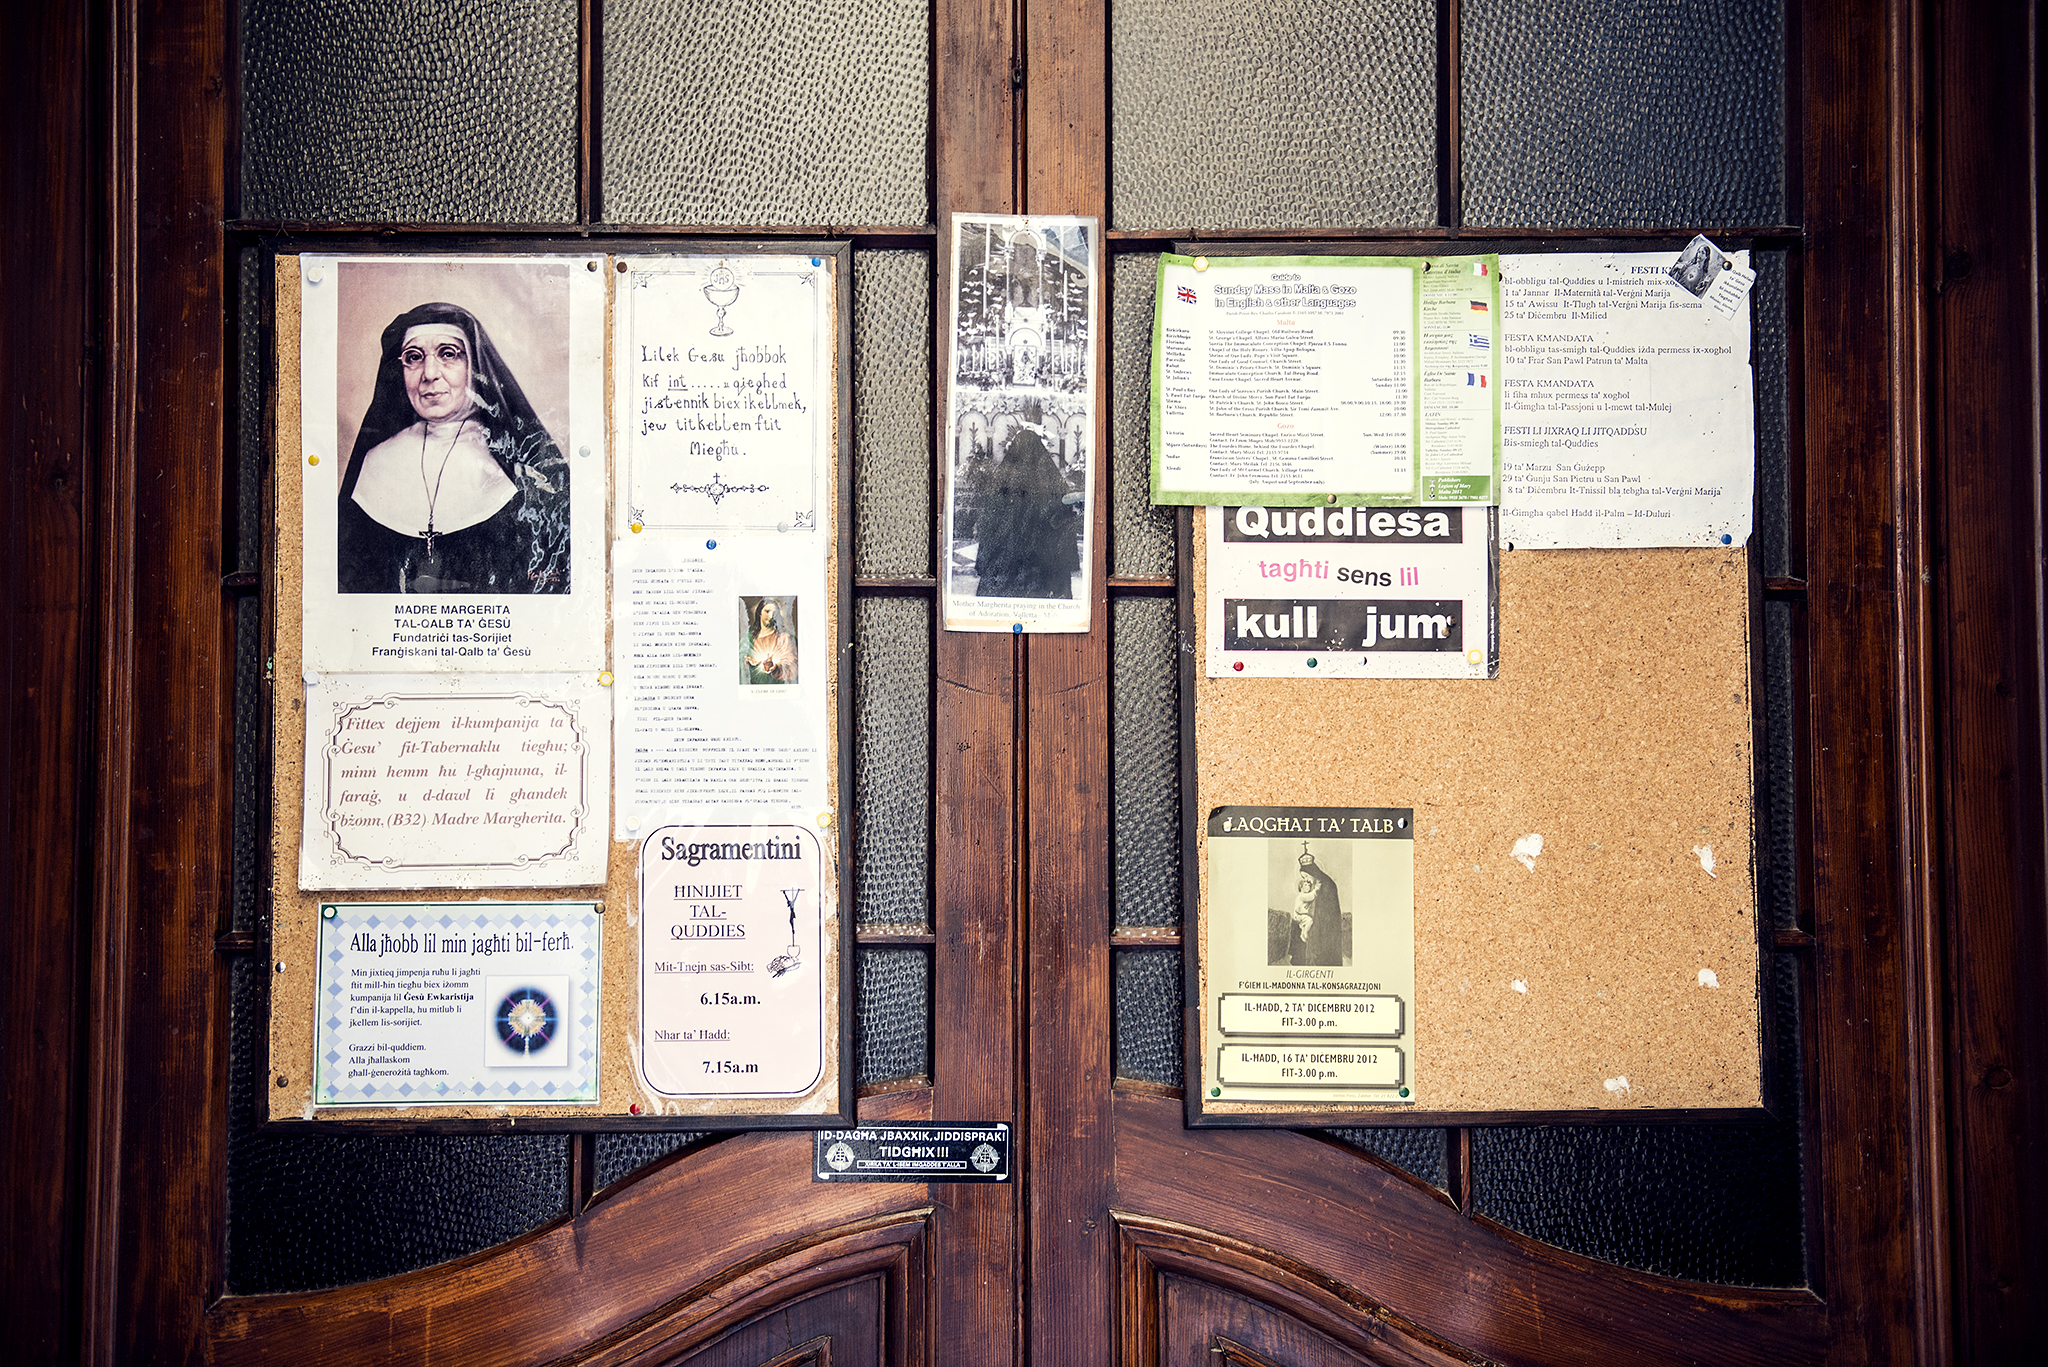 Church door with religious posters and notices